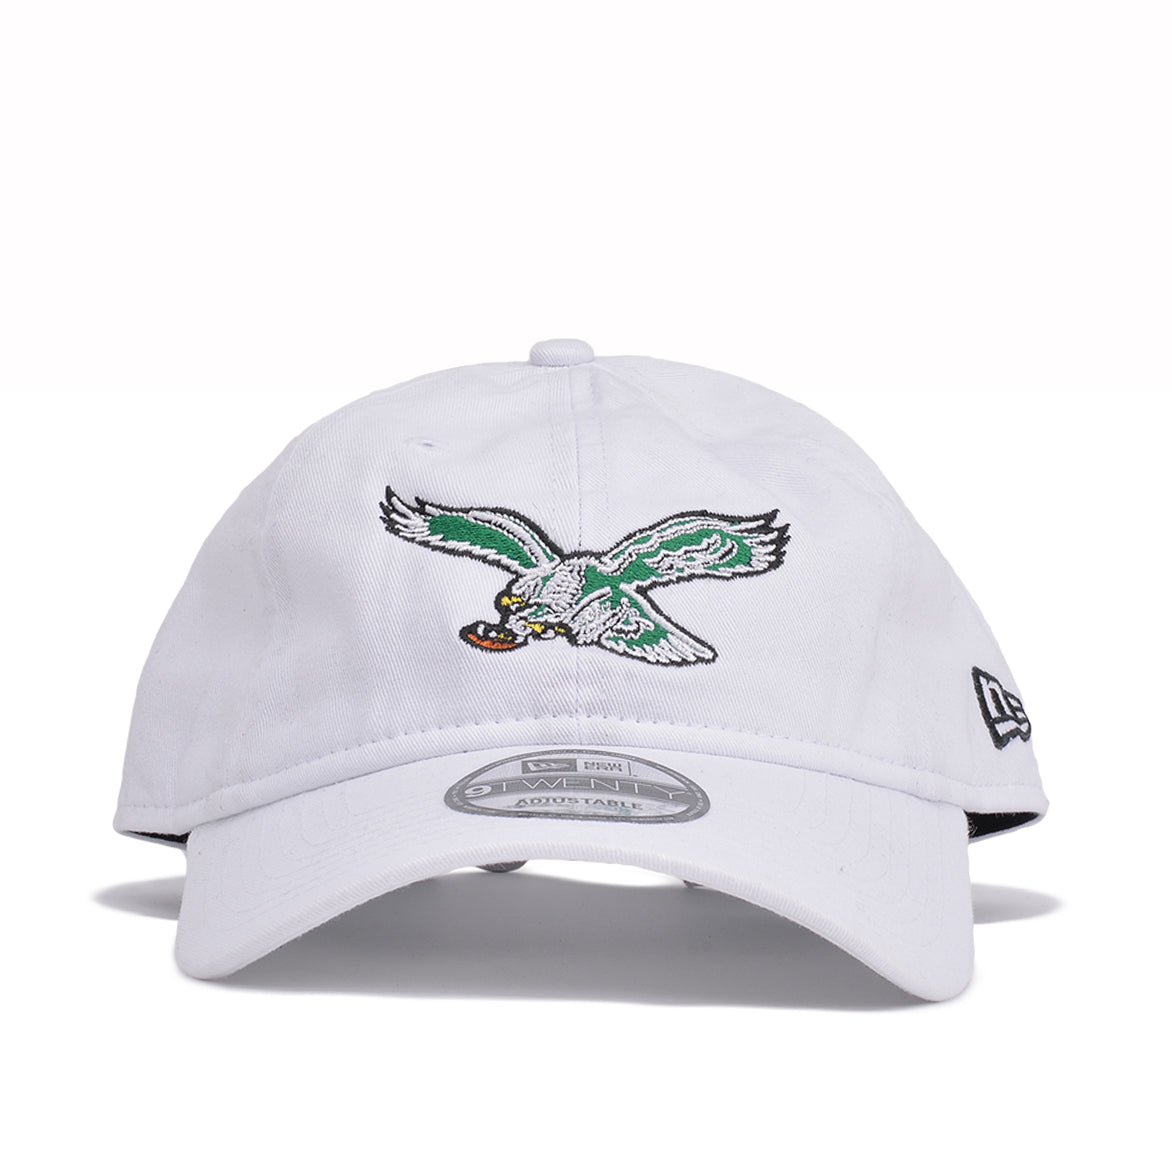 ec02c51fc33 PHILADELPHIA EAGLES THROWBACK DAD HAT - WHITE